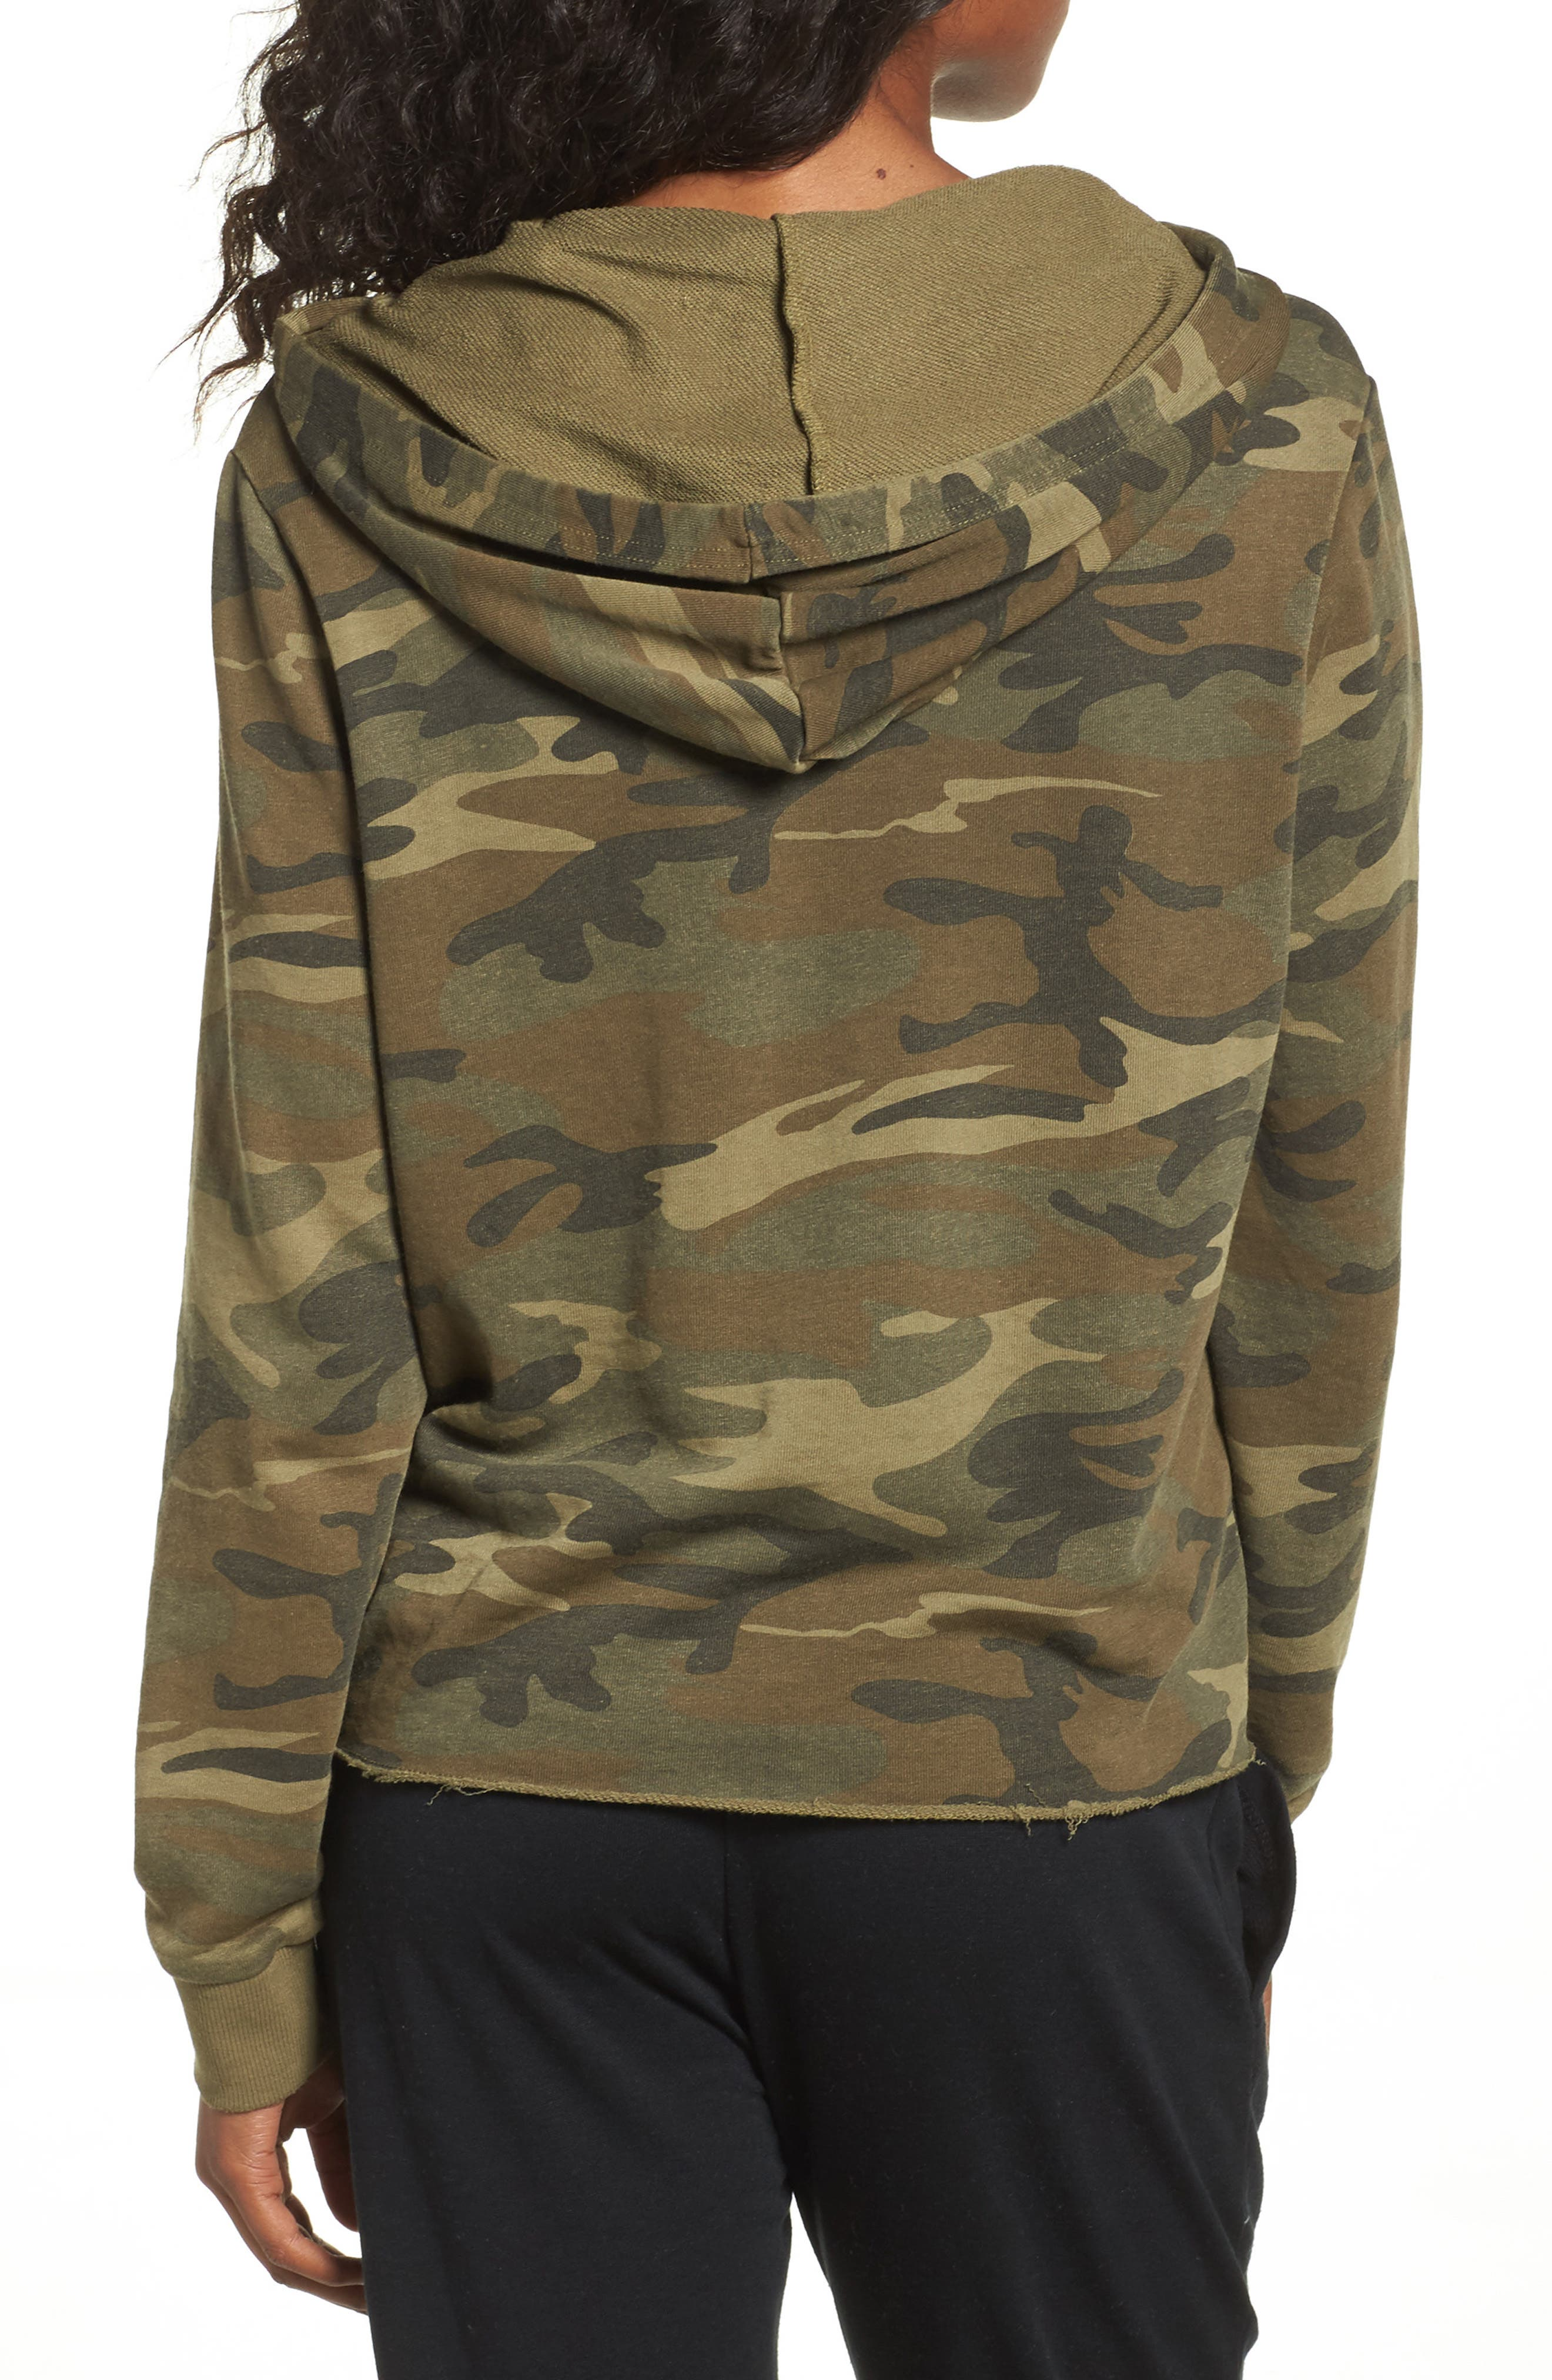 Day Off Hoodie,                             Alternate thumbnail 2, color,                             Camo